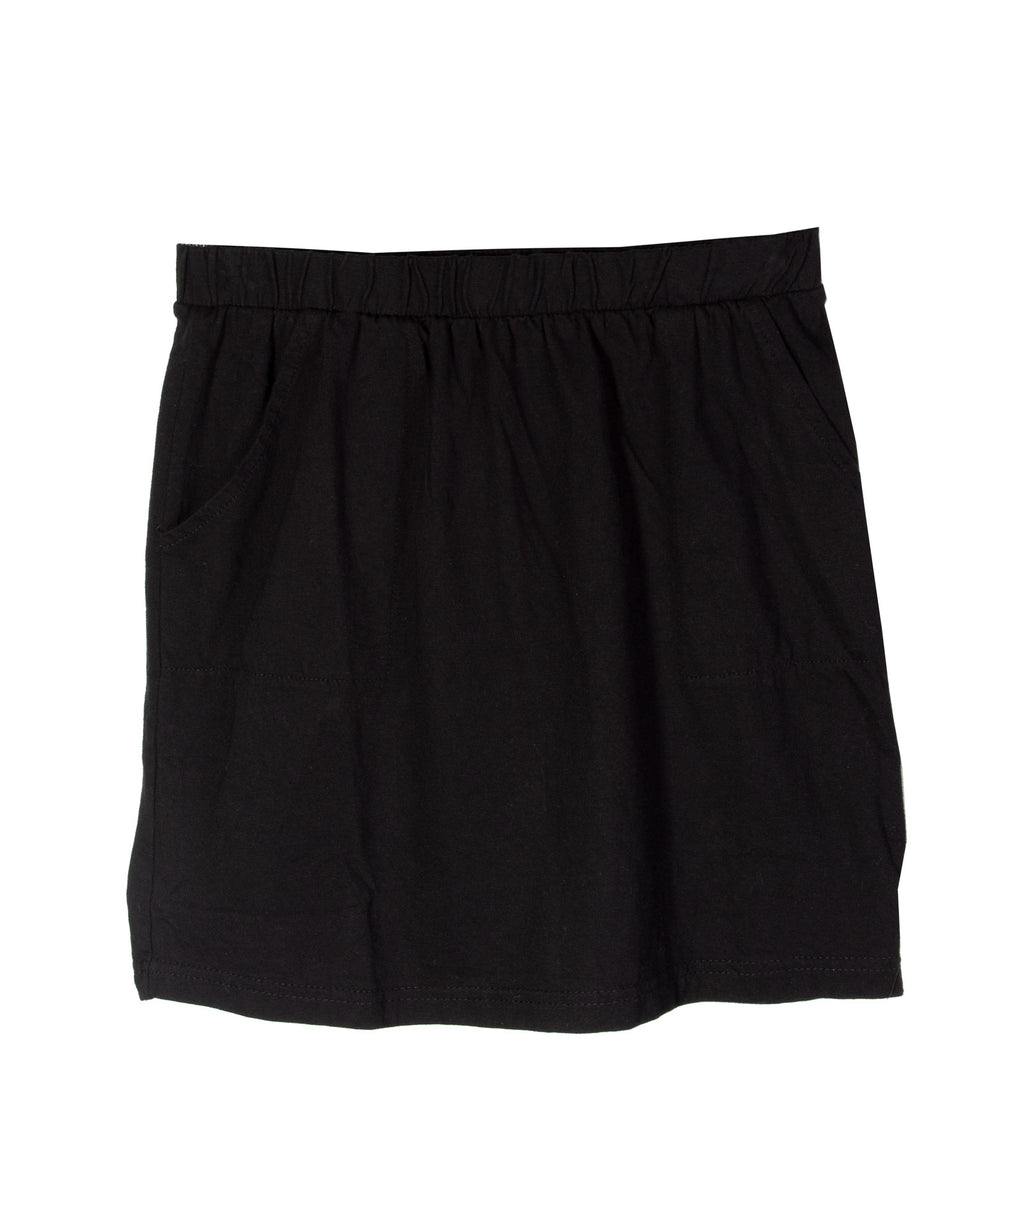 Black Licorice Skirt Women